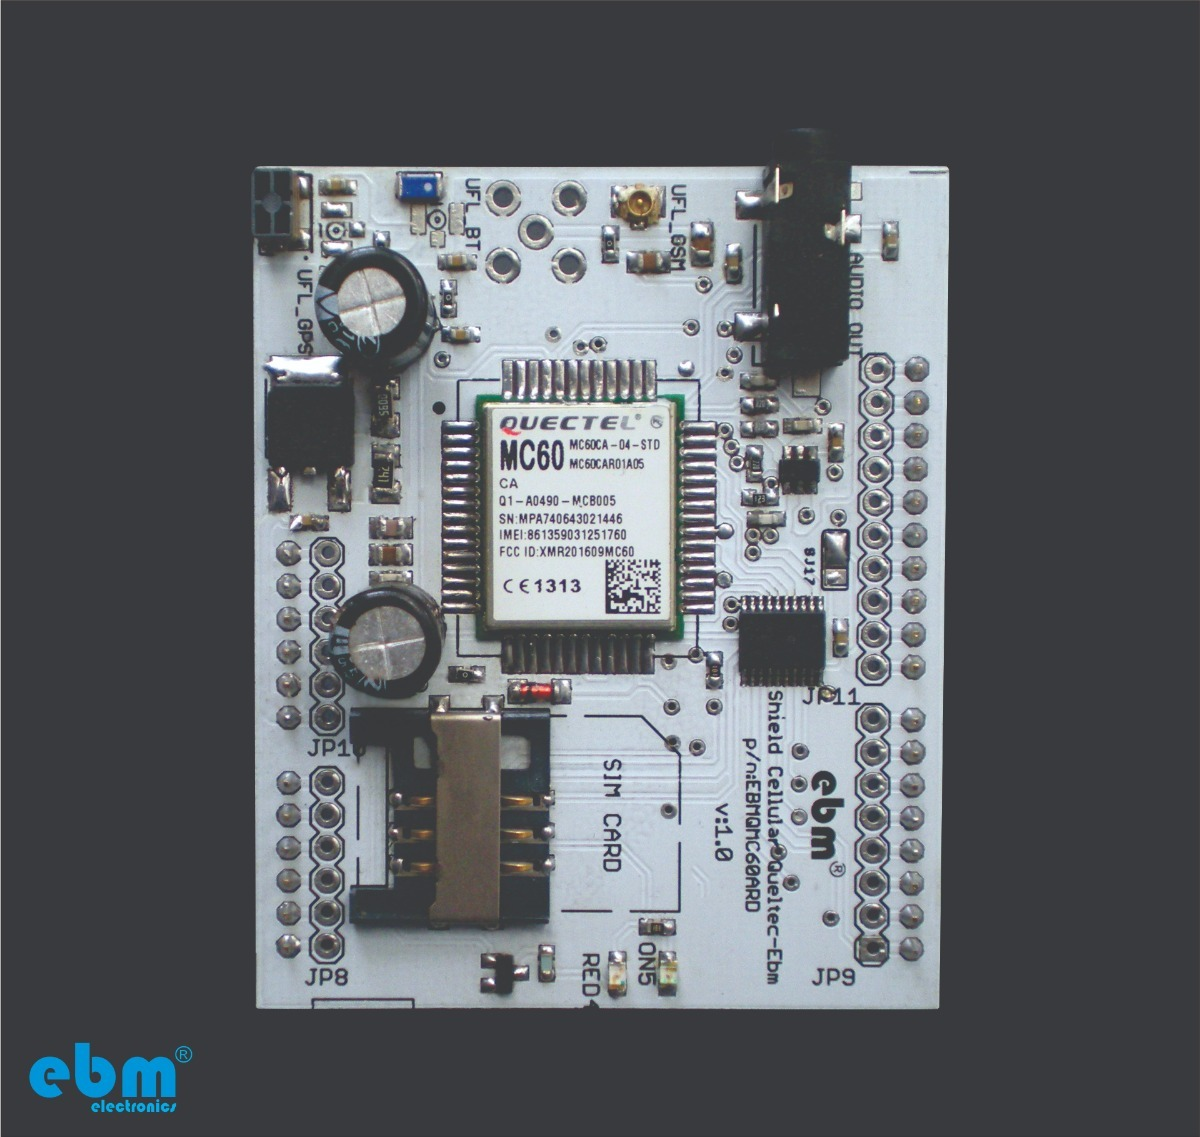 Shield Gprs Gsm Arduino Mc60 - Quectel